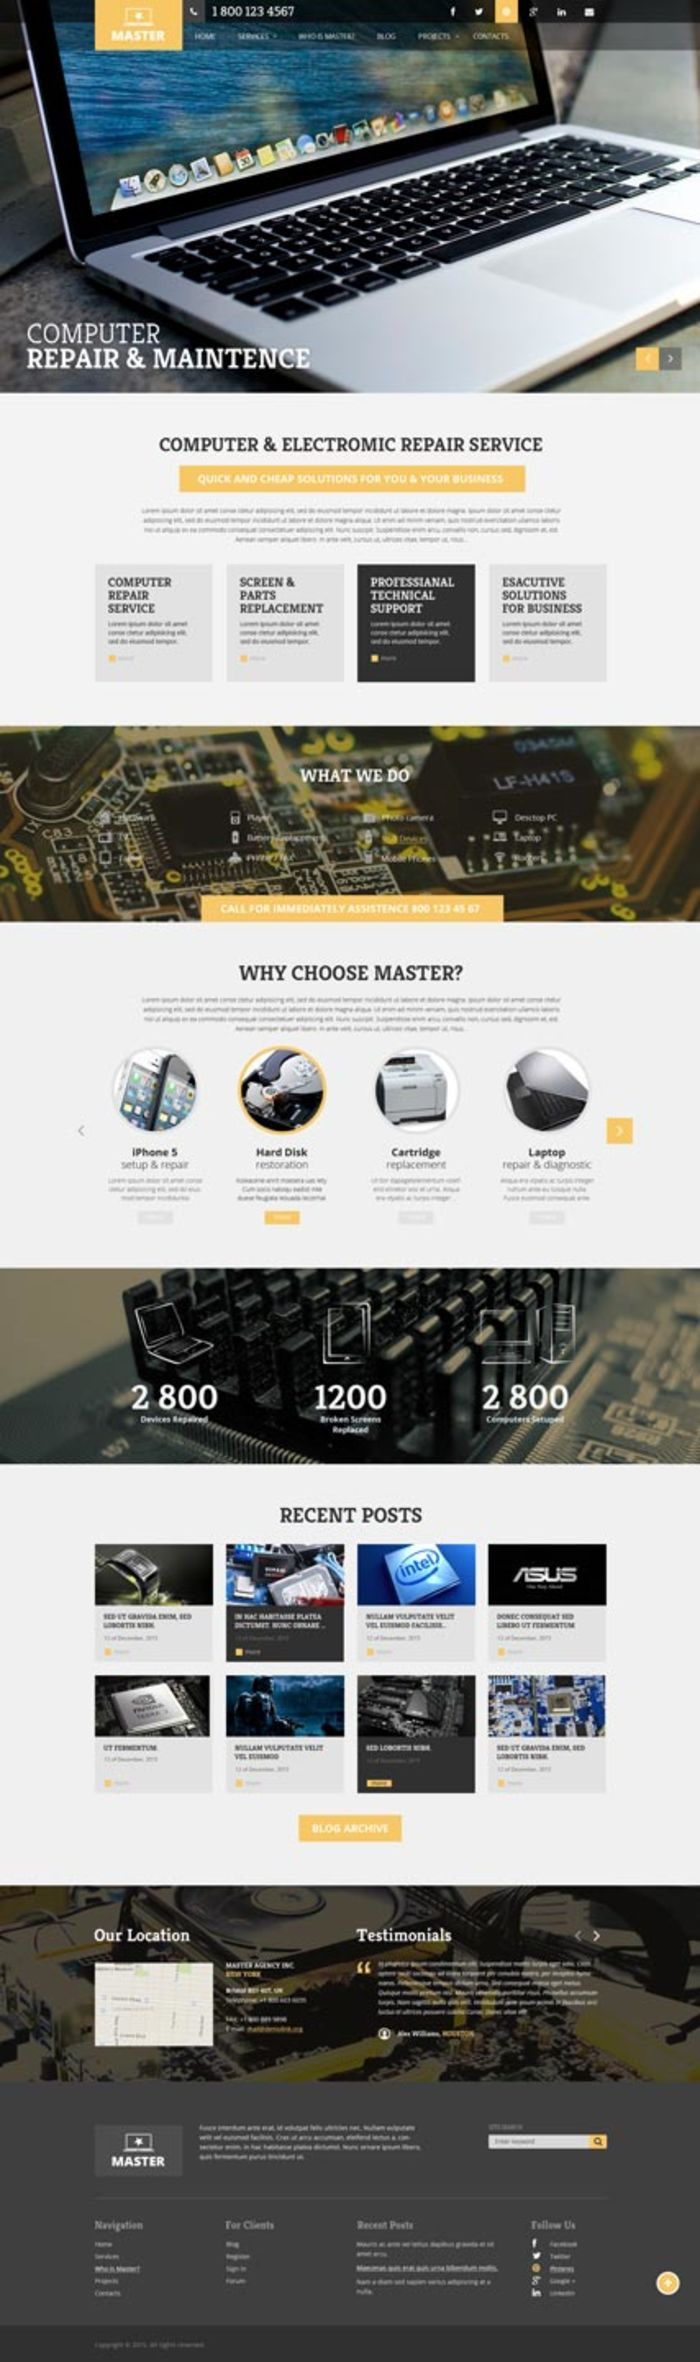 free computer repair website template 2018 08